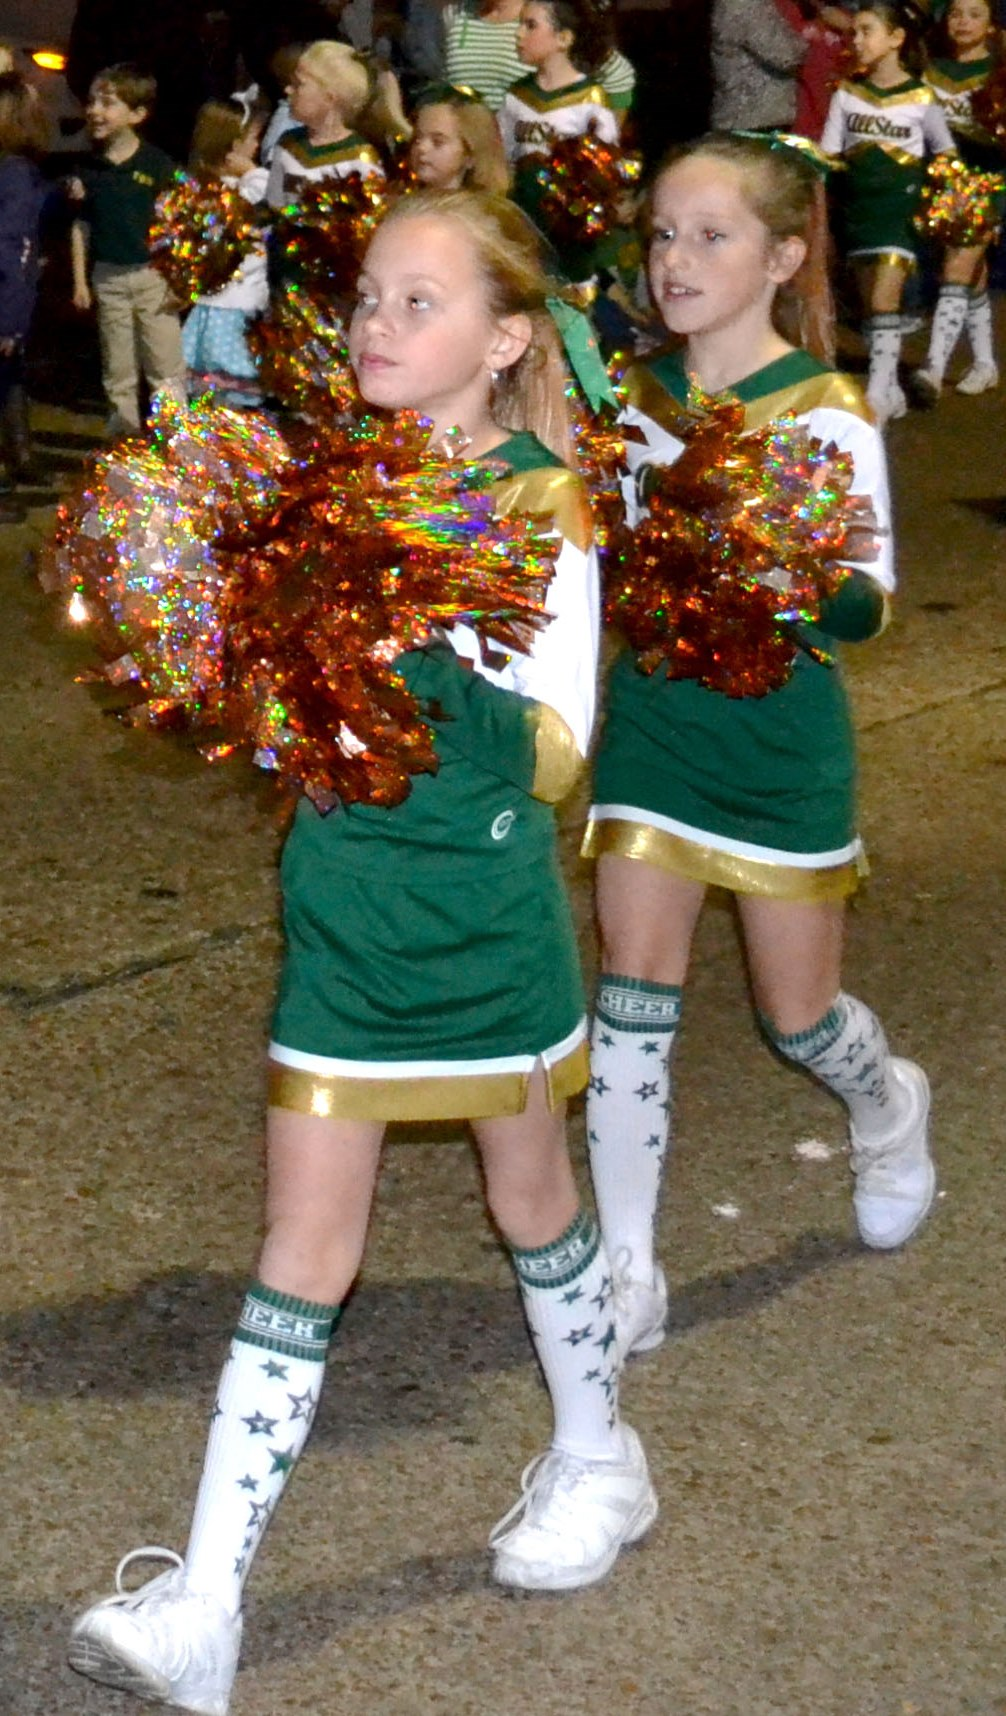 Delta All-State Recreational Cheer squad performed during events like the Cleveland Christmas Parade this past year.